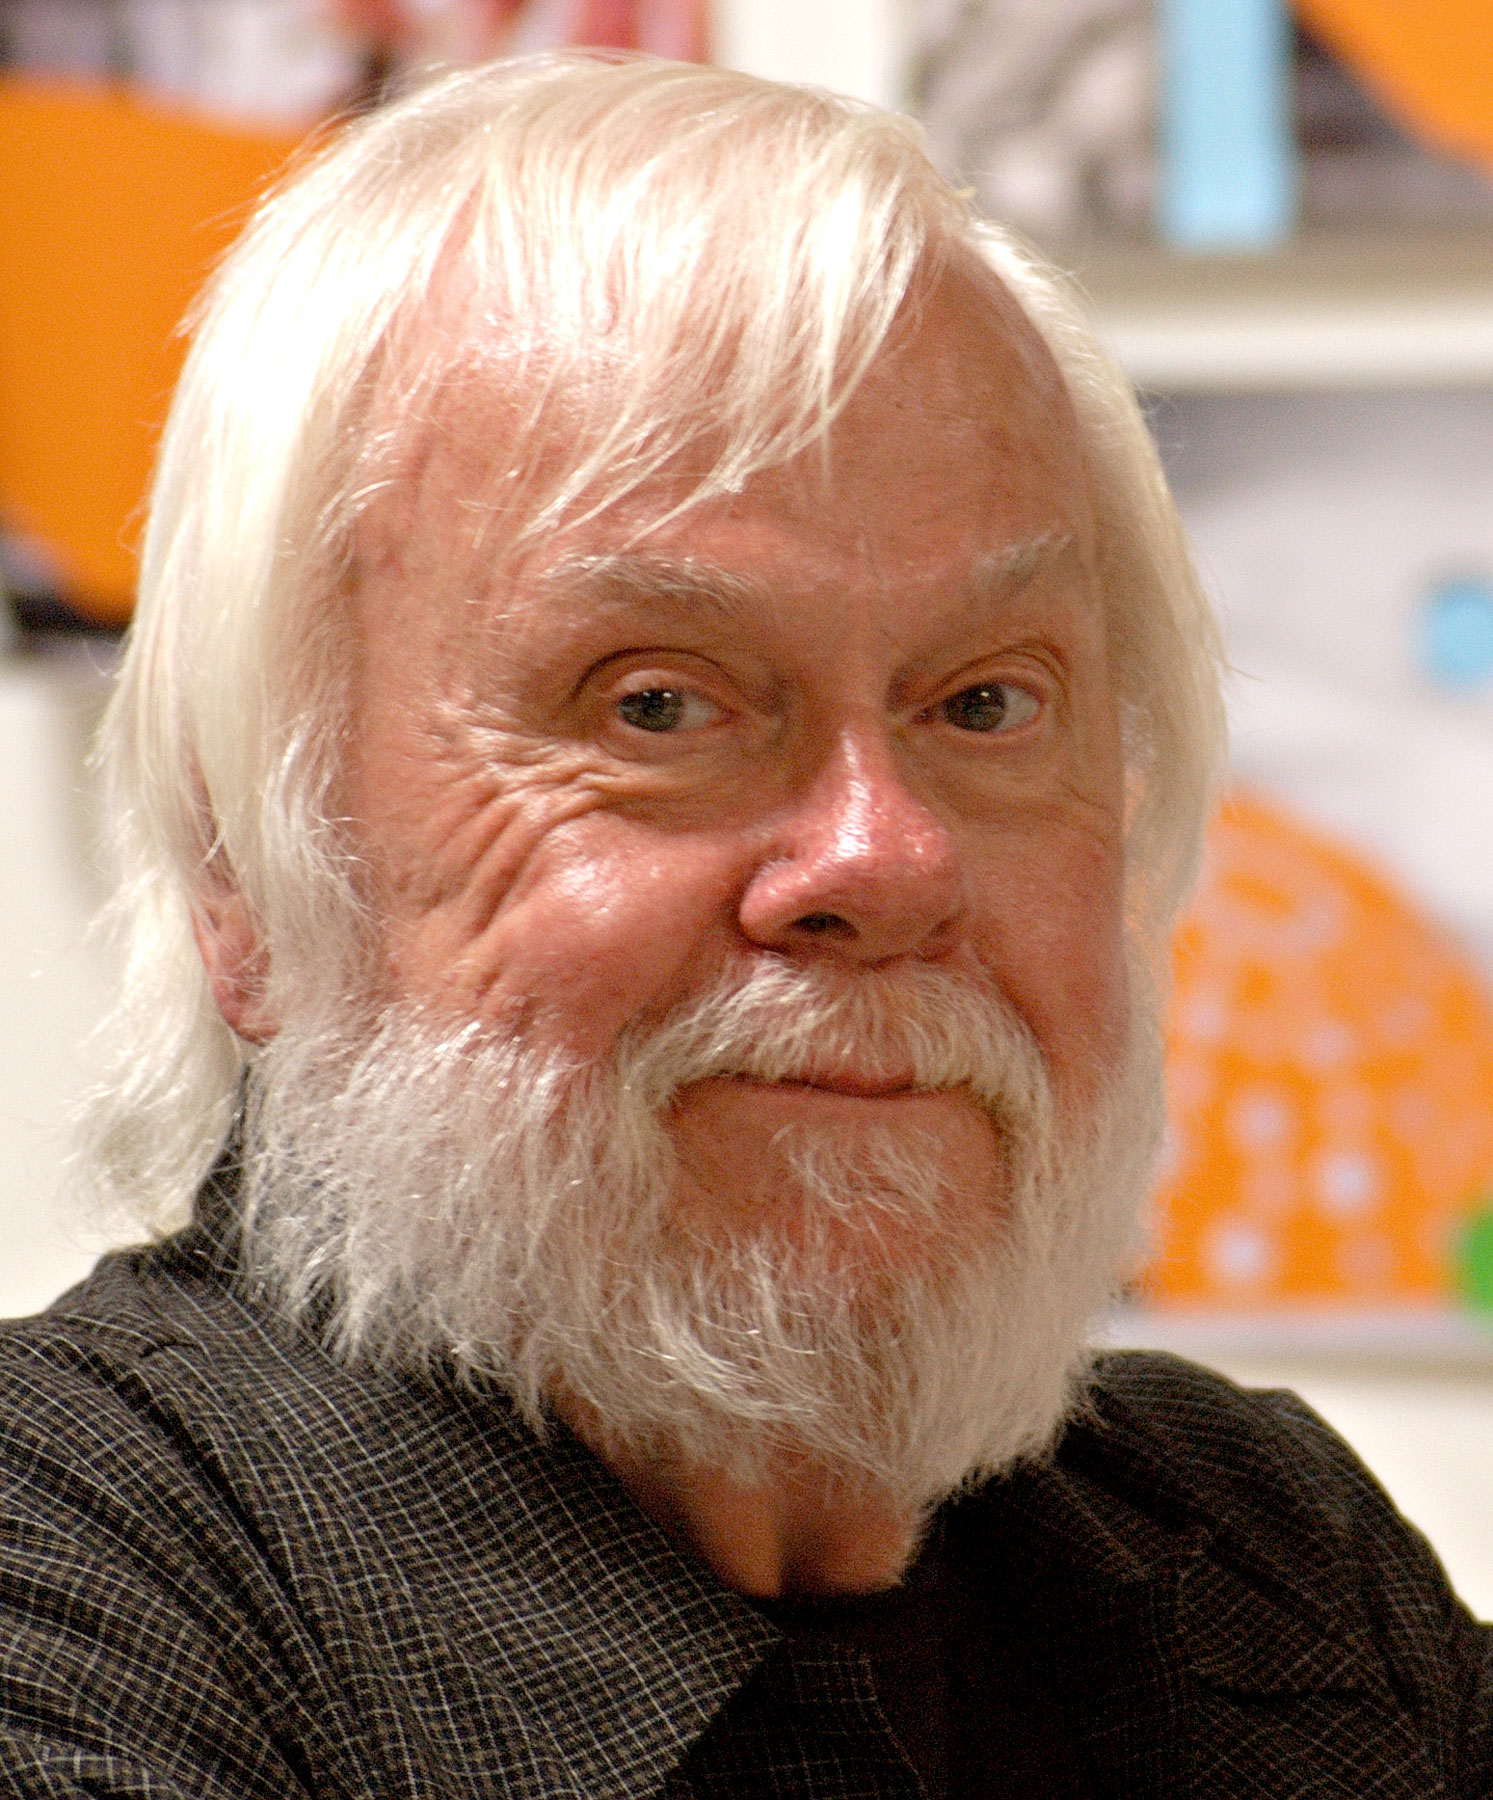 John Baldessari, 2004, by Analia Saban. Image courtesy of Wikimedia Commons